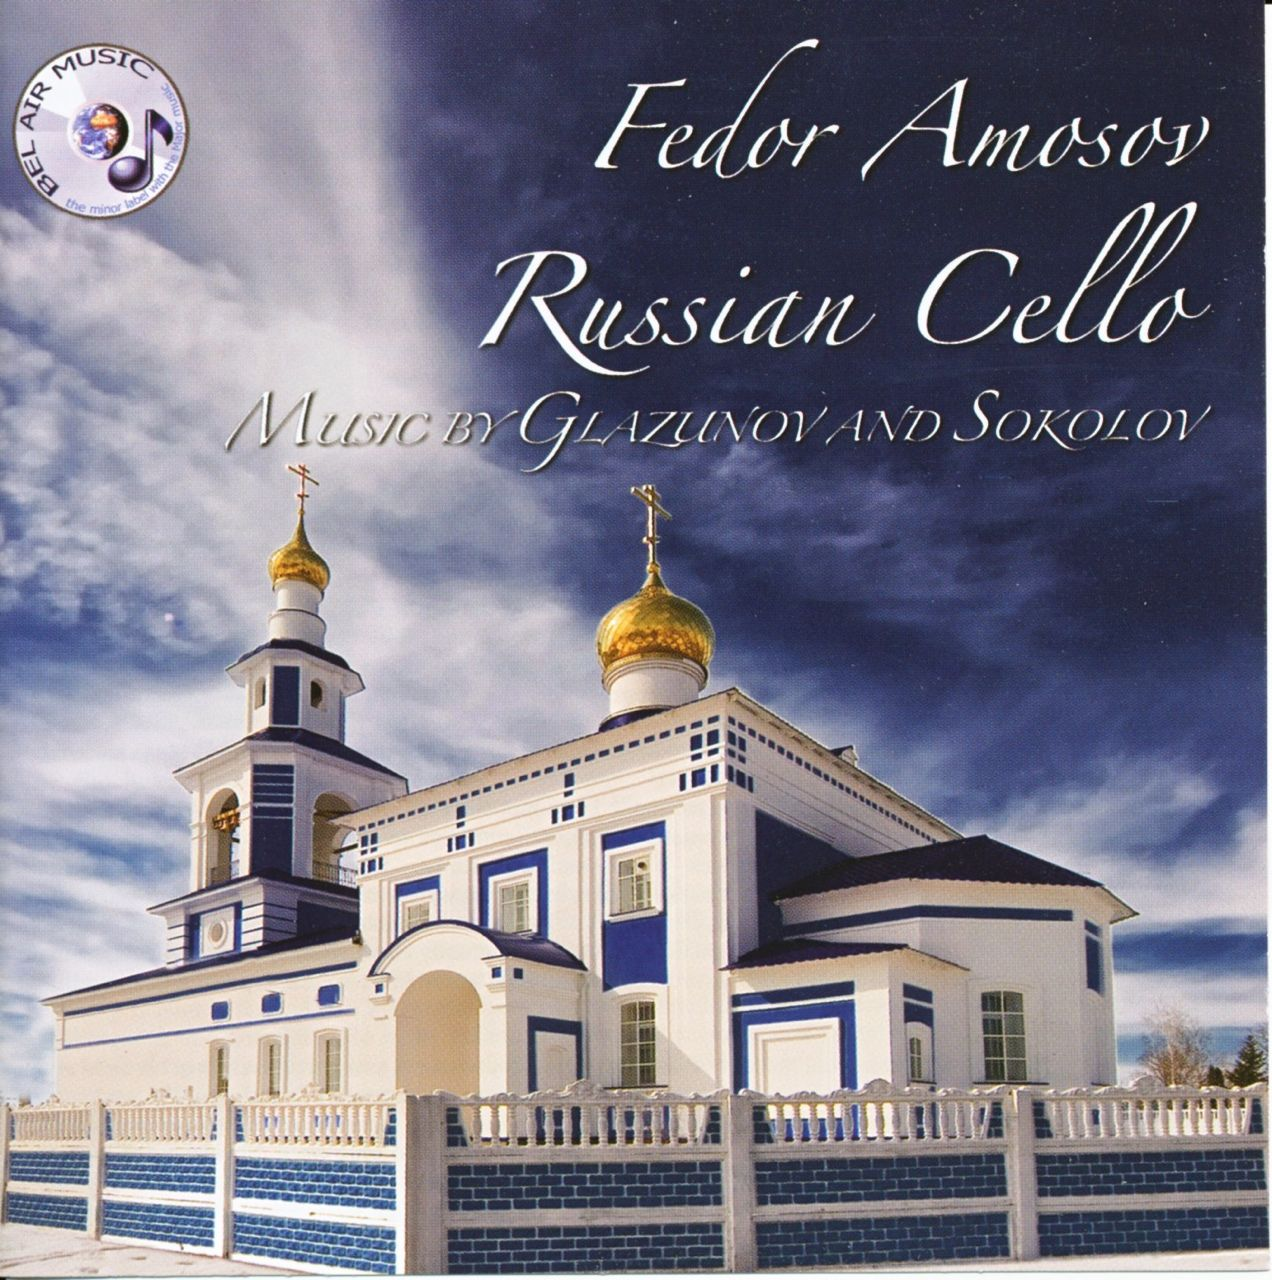 Russian Cello Music by Glazunov & Sokolov